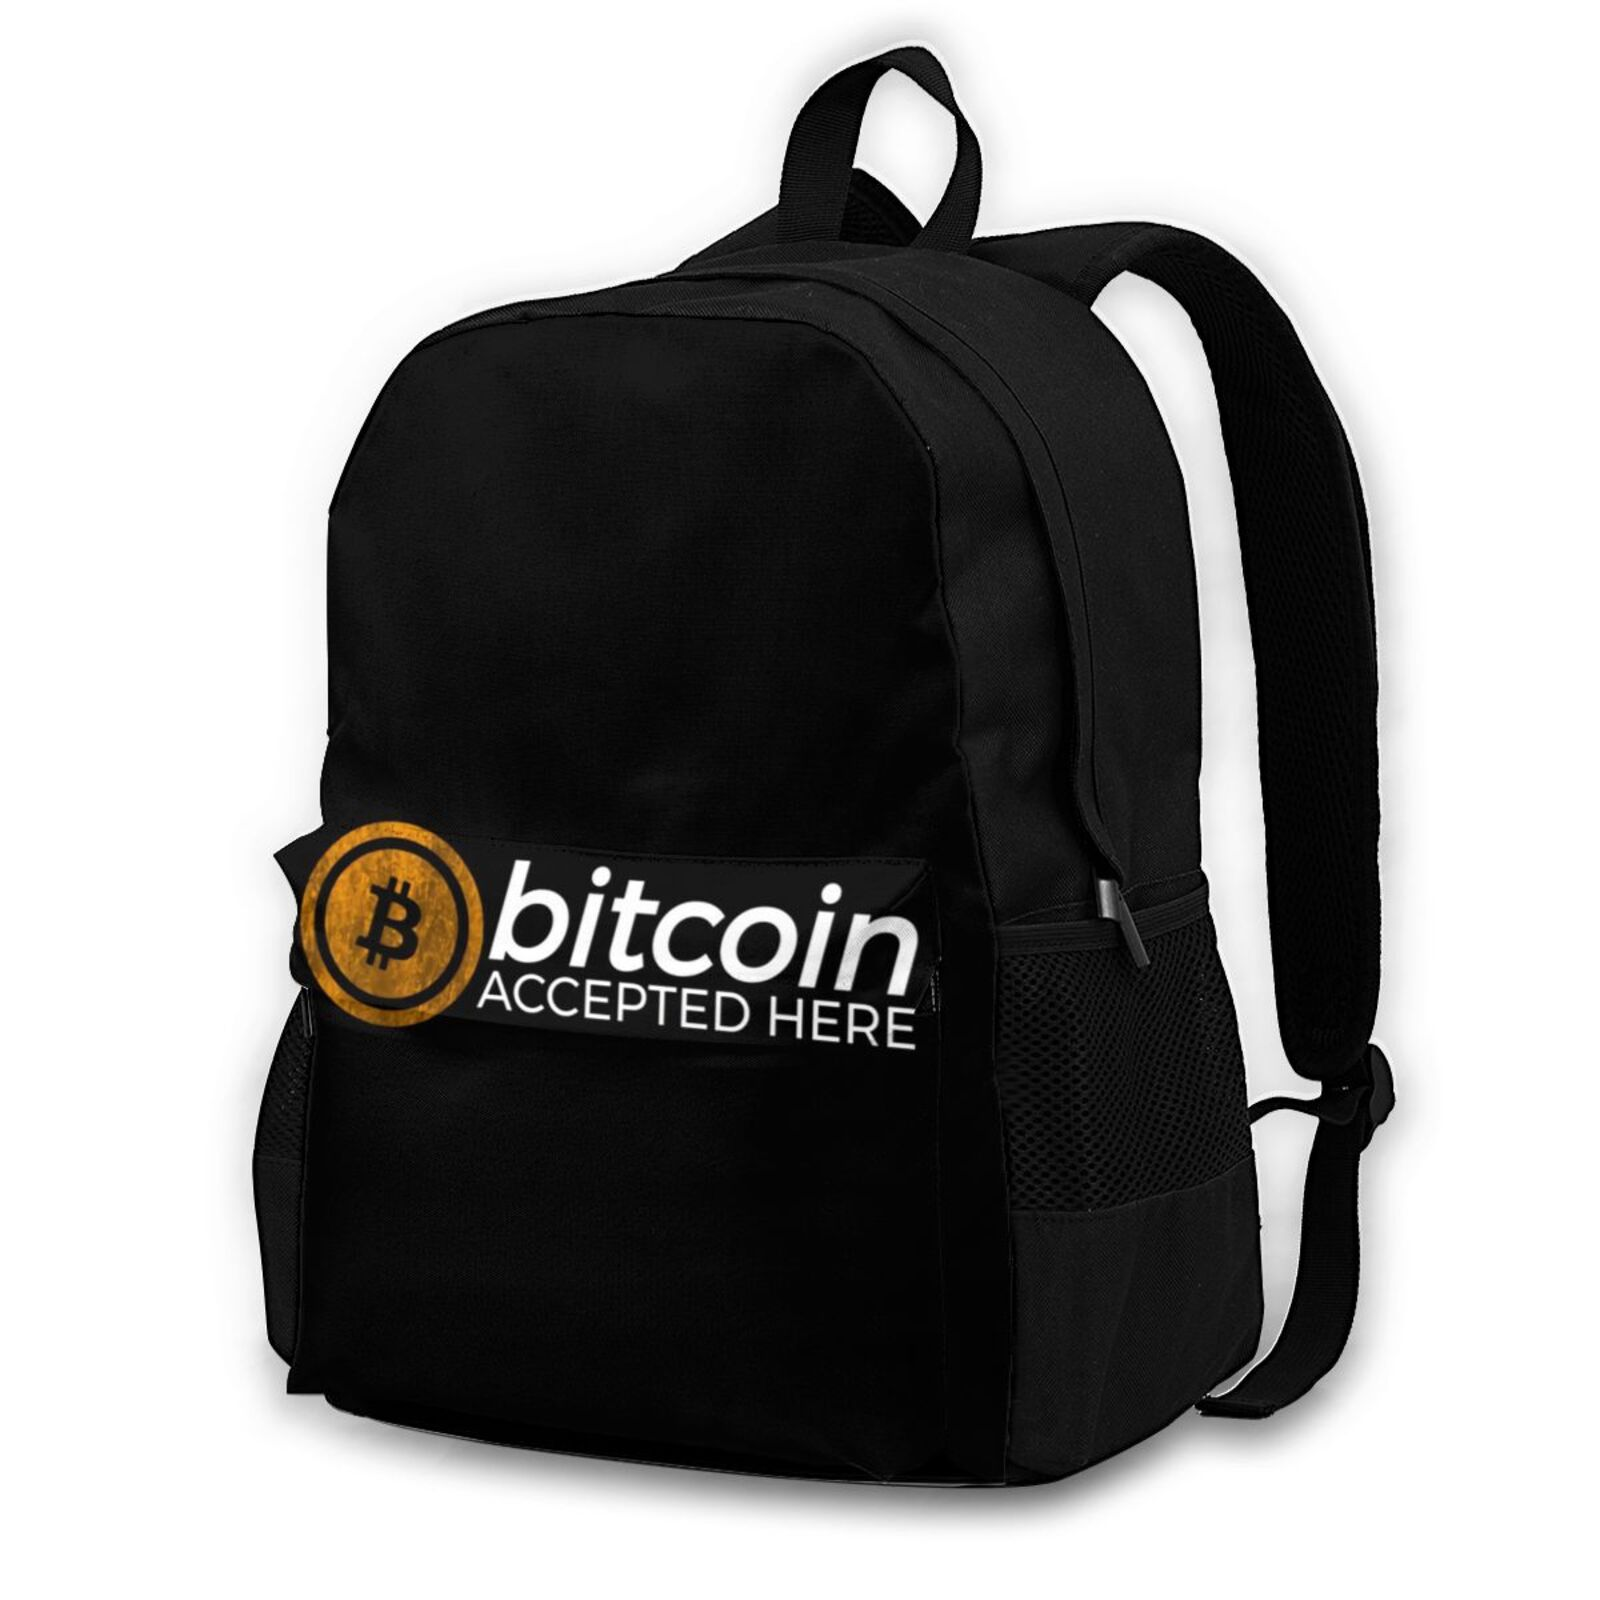 Bitcoin Backpacks Universal Polyester Campus Backpack Runner Print Bags 1